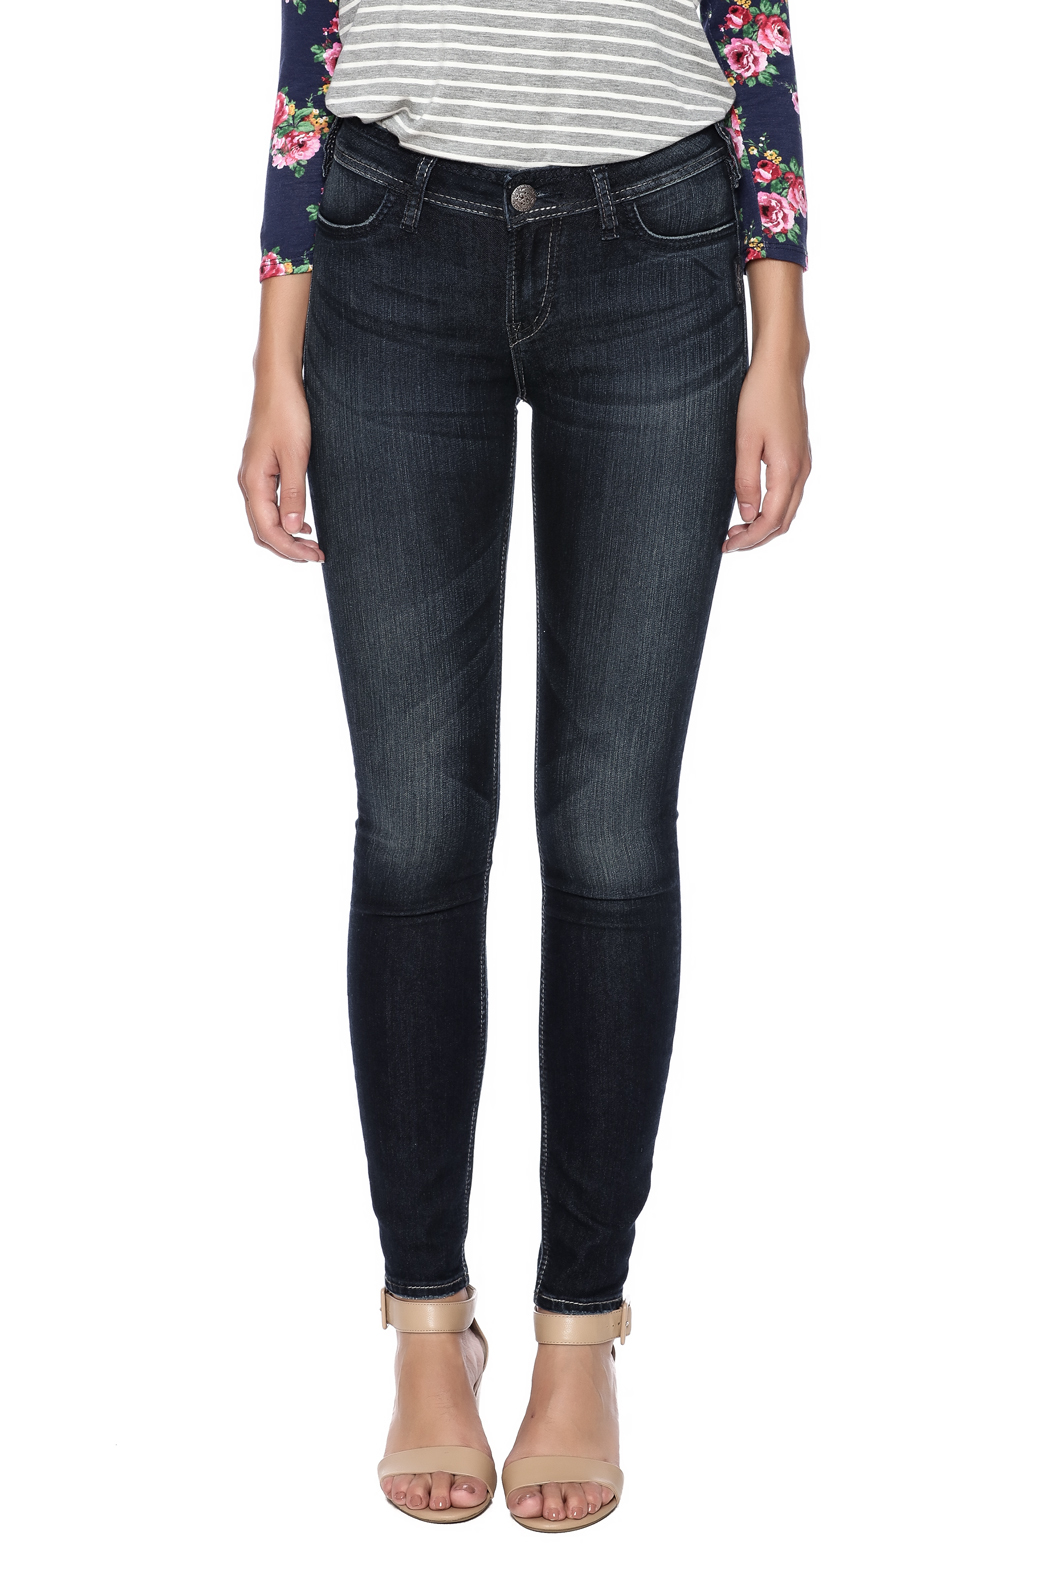 Silver Jeans Co. Suki Jeggings - Side Cropped Image